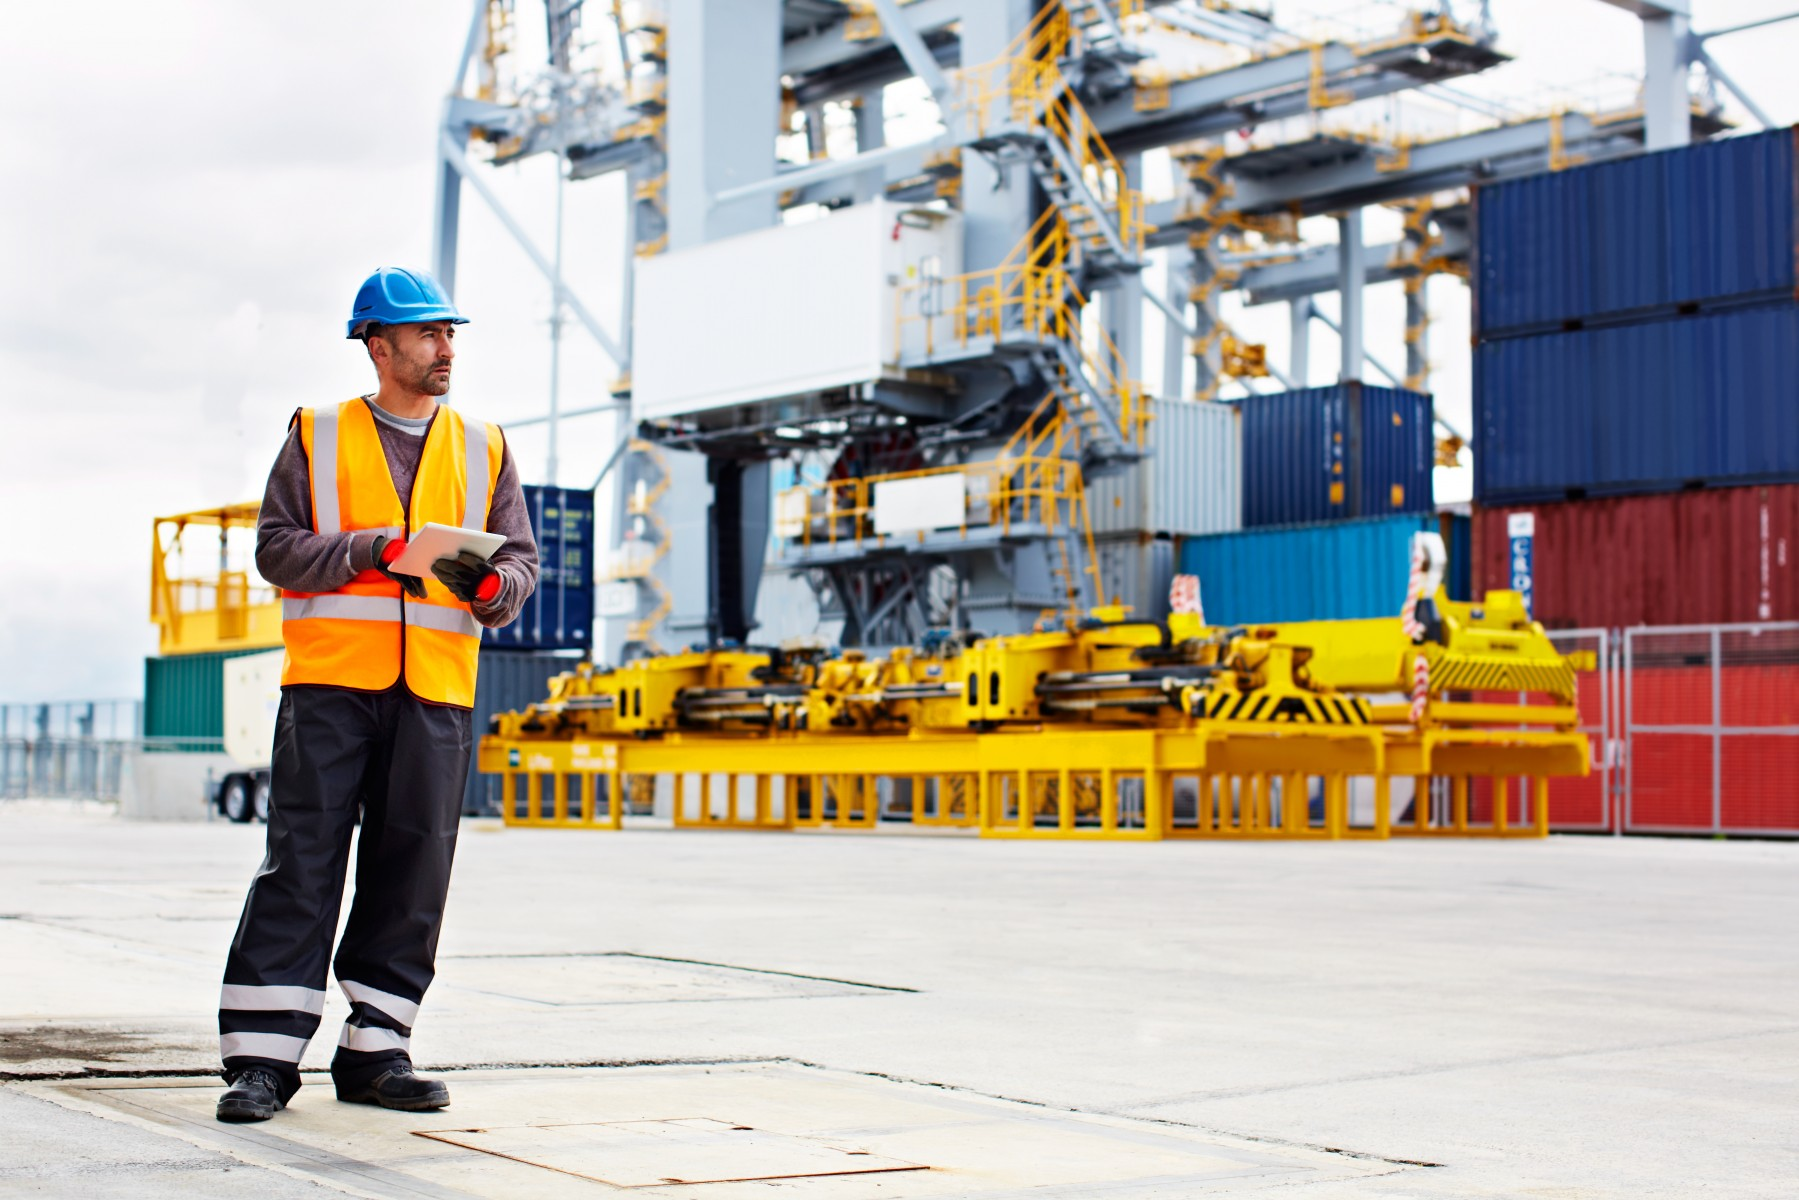 Male maritime worker wearing safety gear and walking on deck of container ship